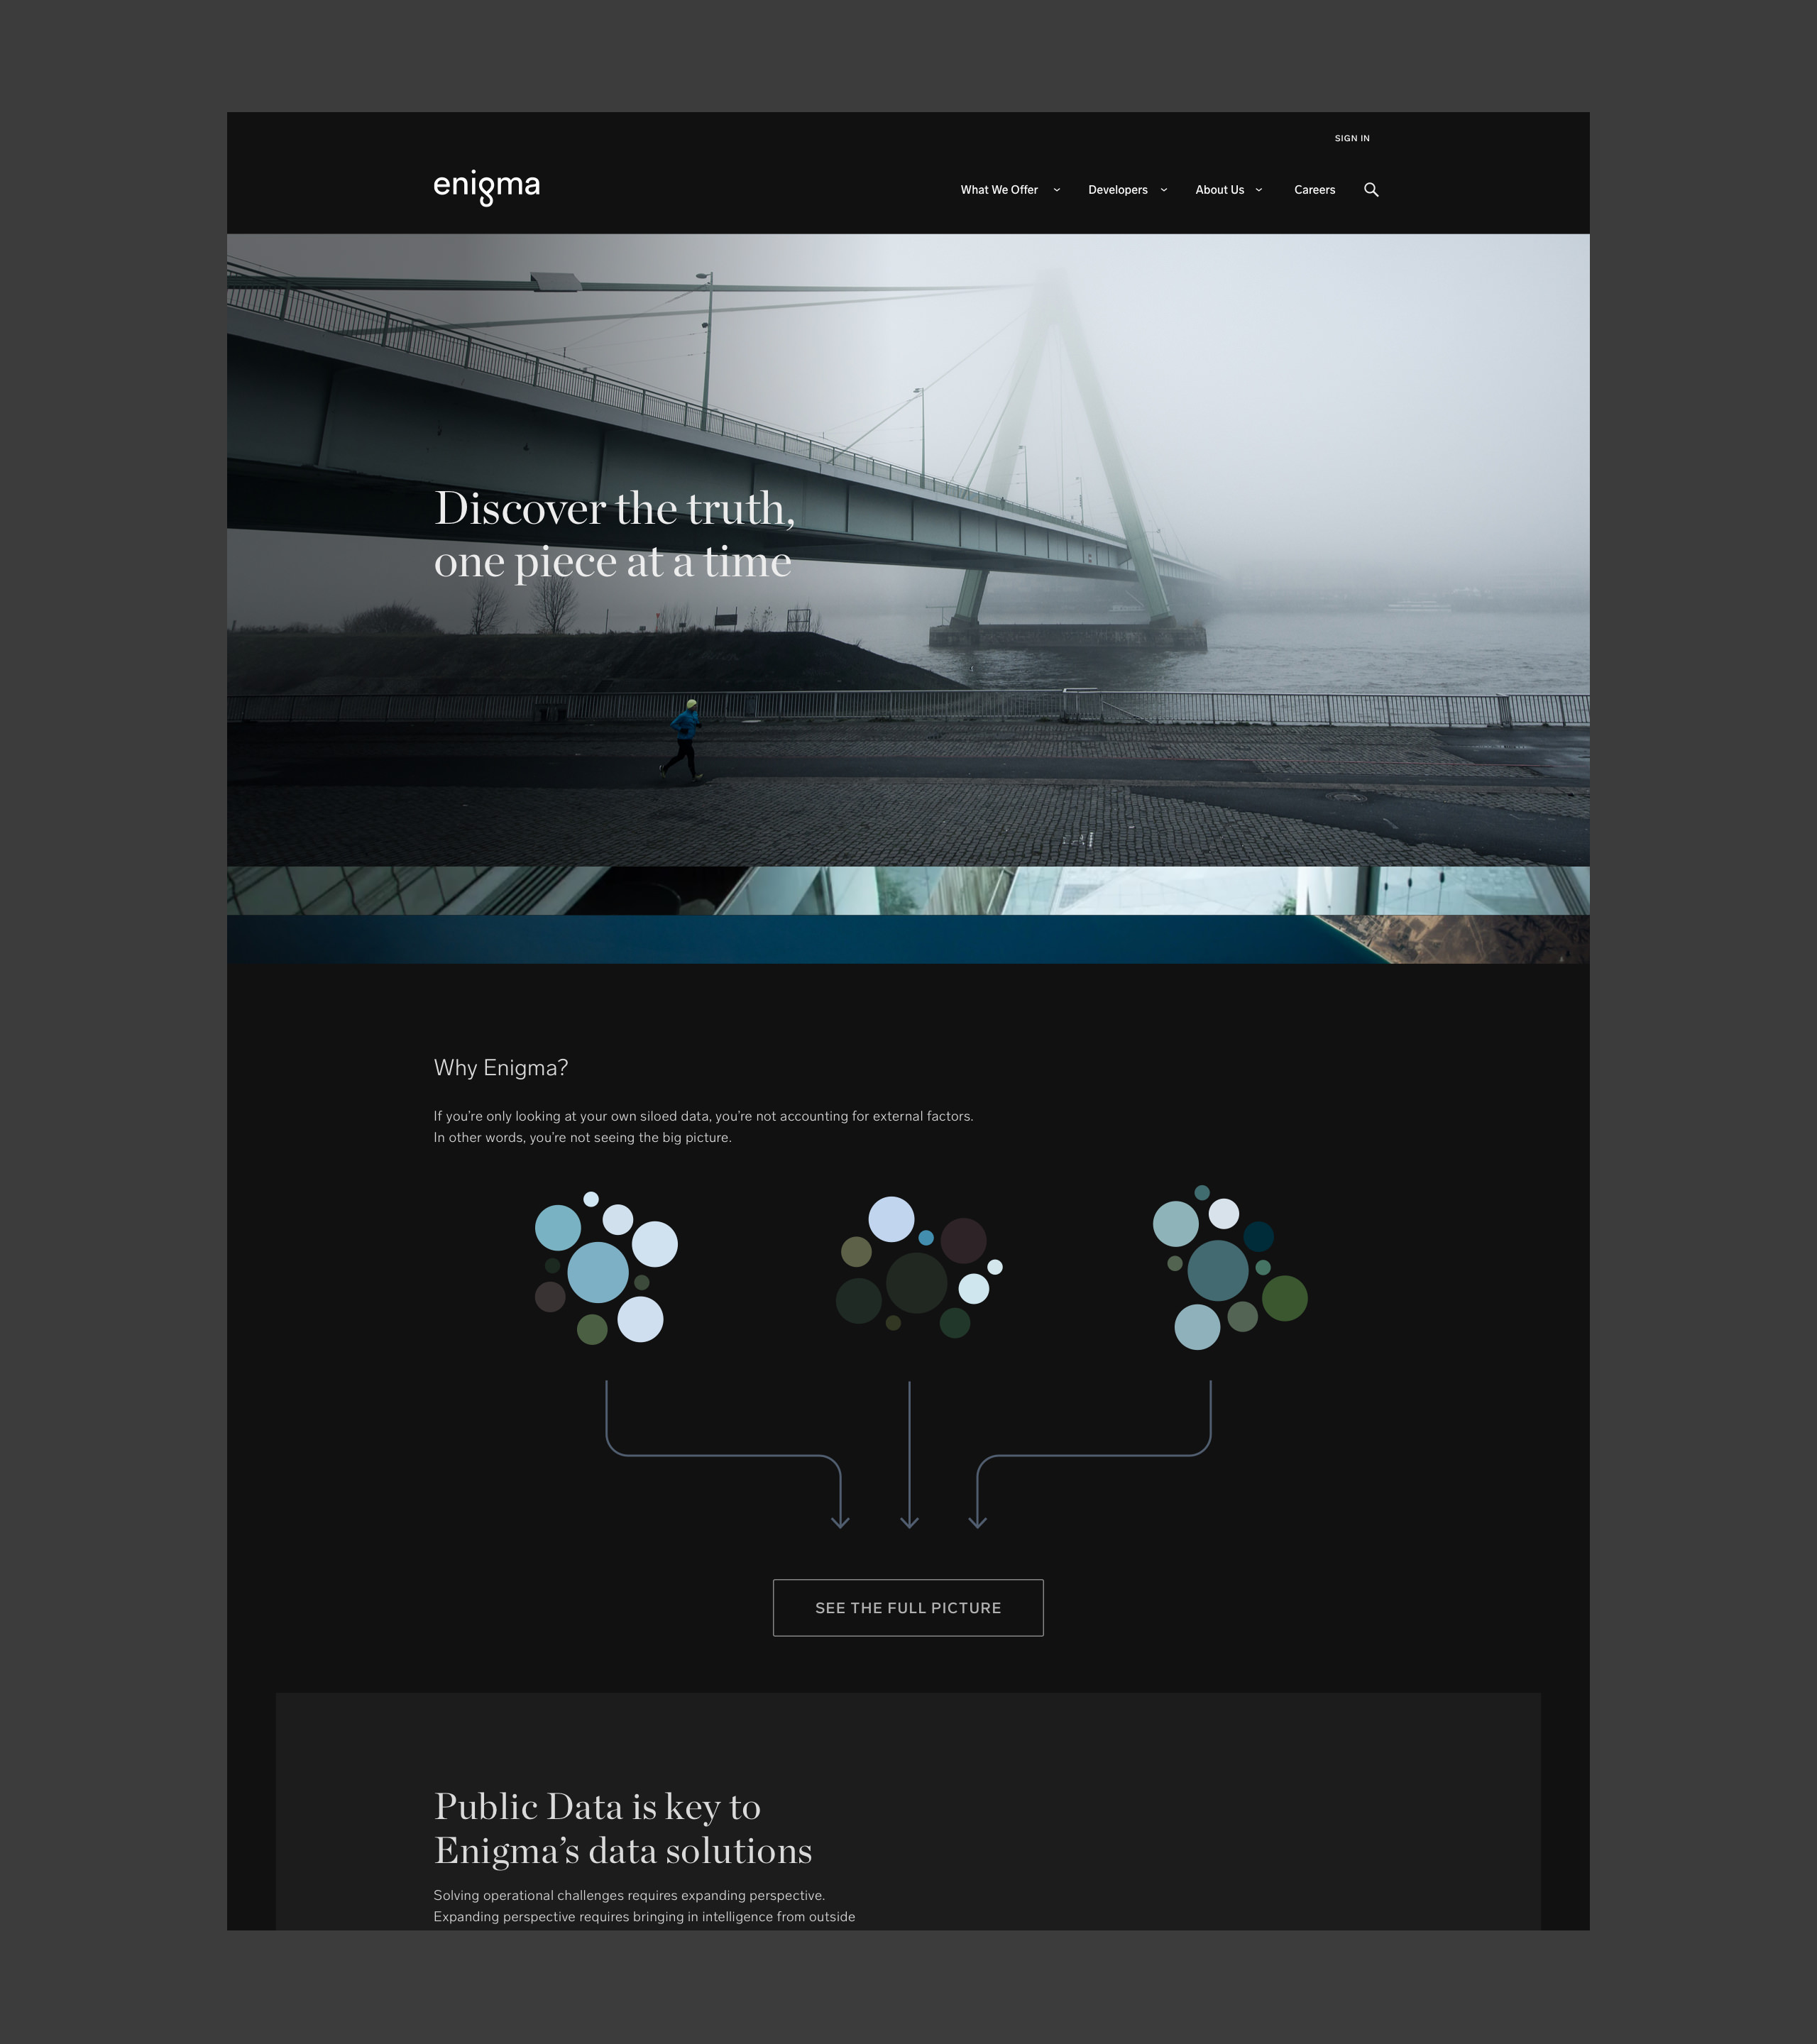 enigma-homepage